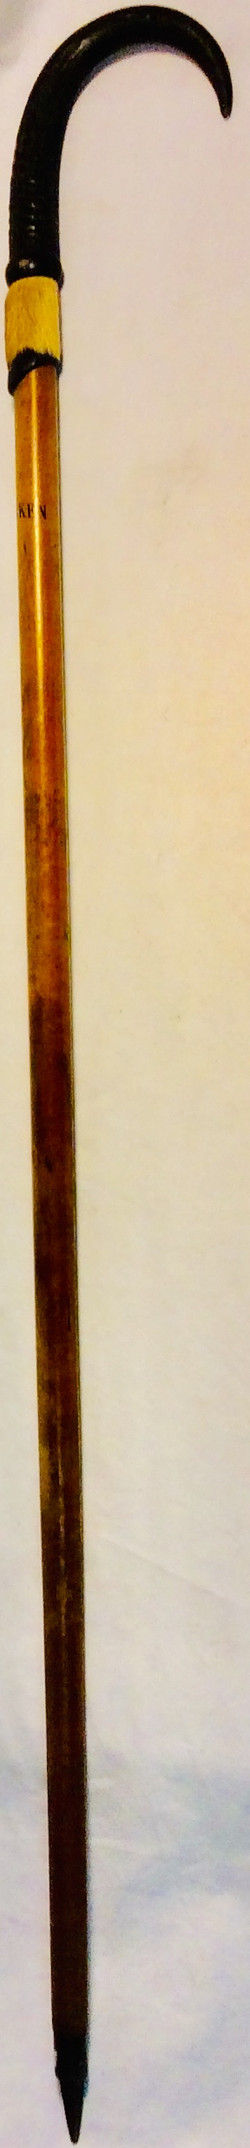 Wooden cane with pointy bottom. Top imitating a bird claw and fur detail.